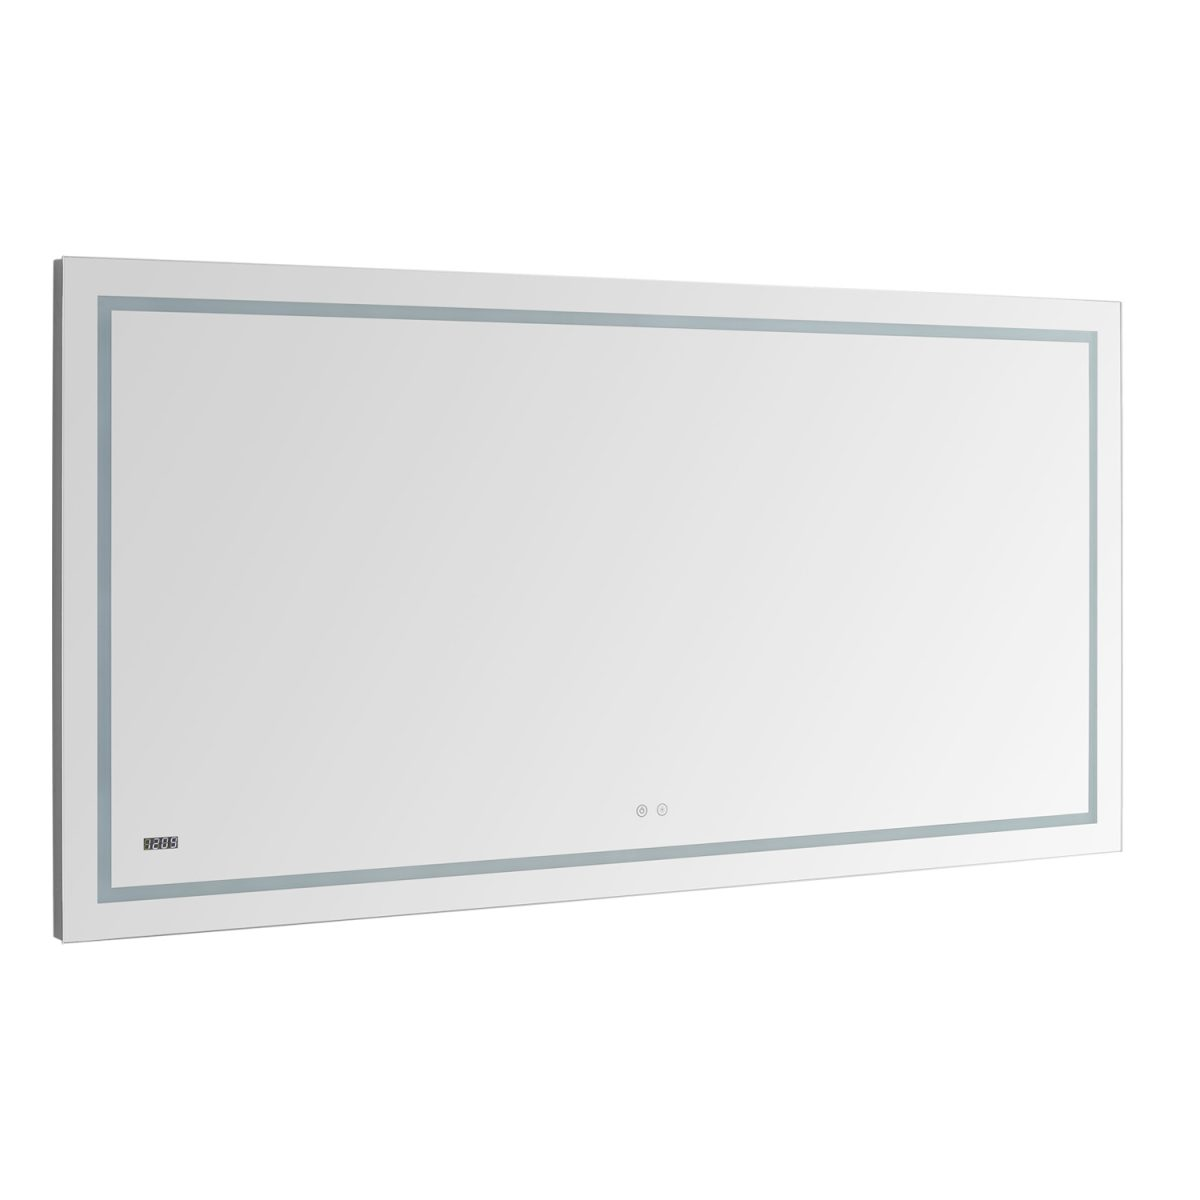 AQUADOM Daytona 60 inches x 36 inches Wall Mounted LED Lighted Silver Mirror for Bathroom